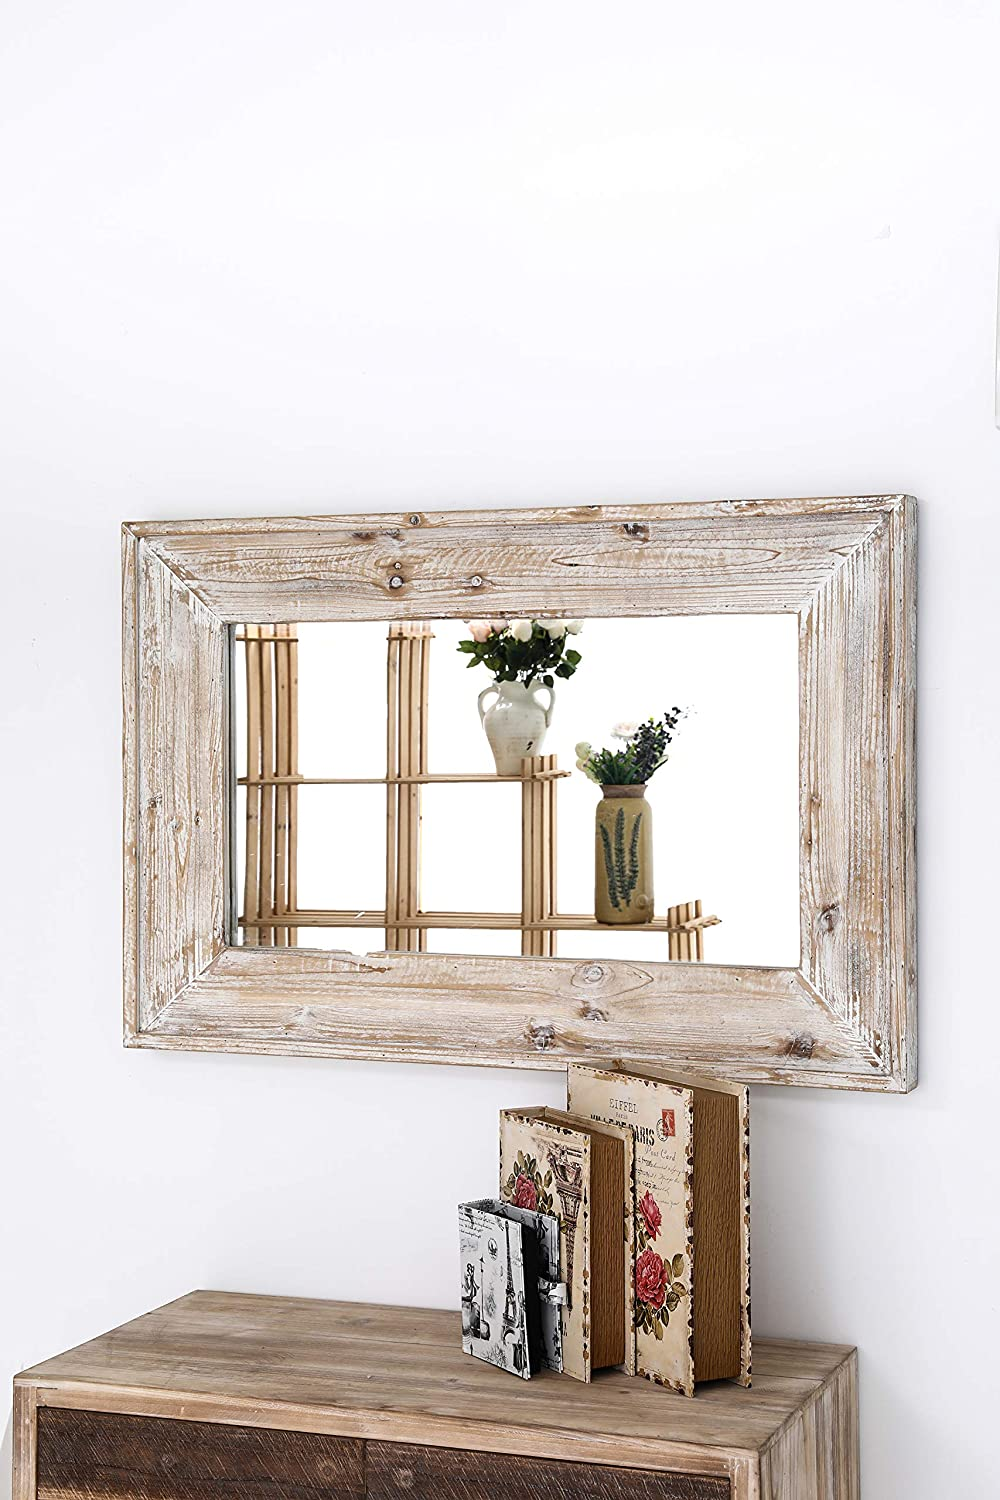 Emaison Wall Mounted Decorative Mirror